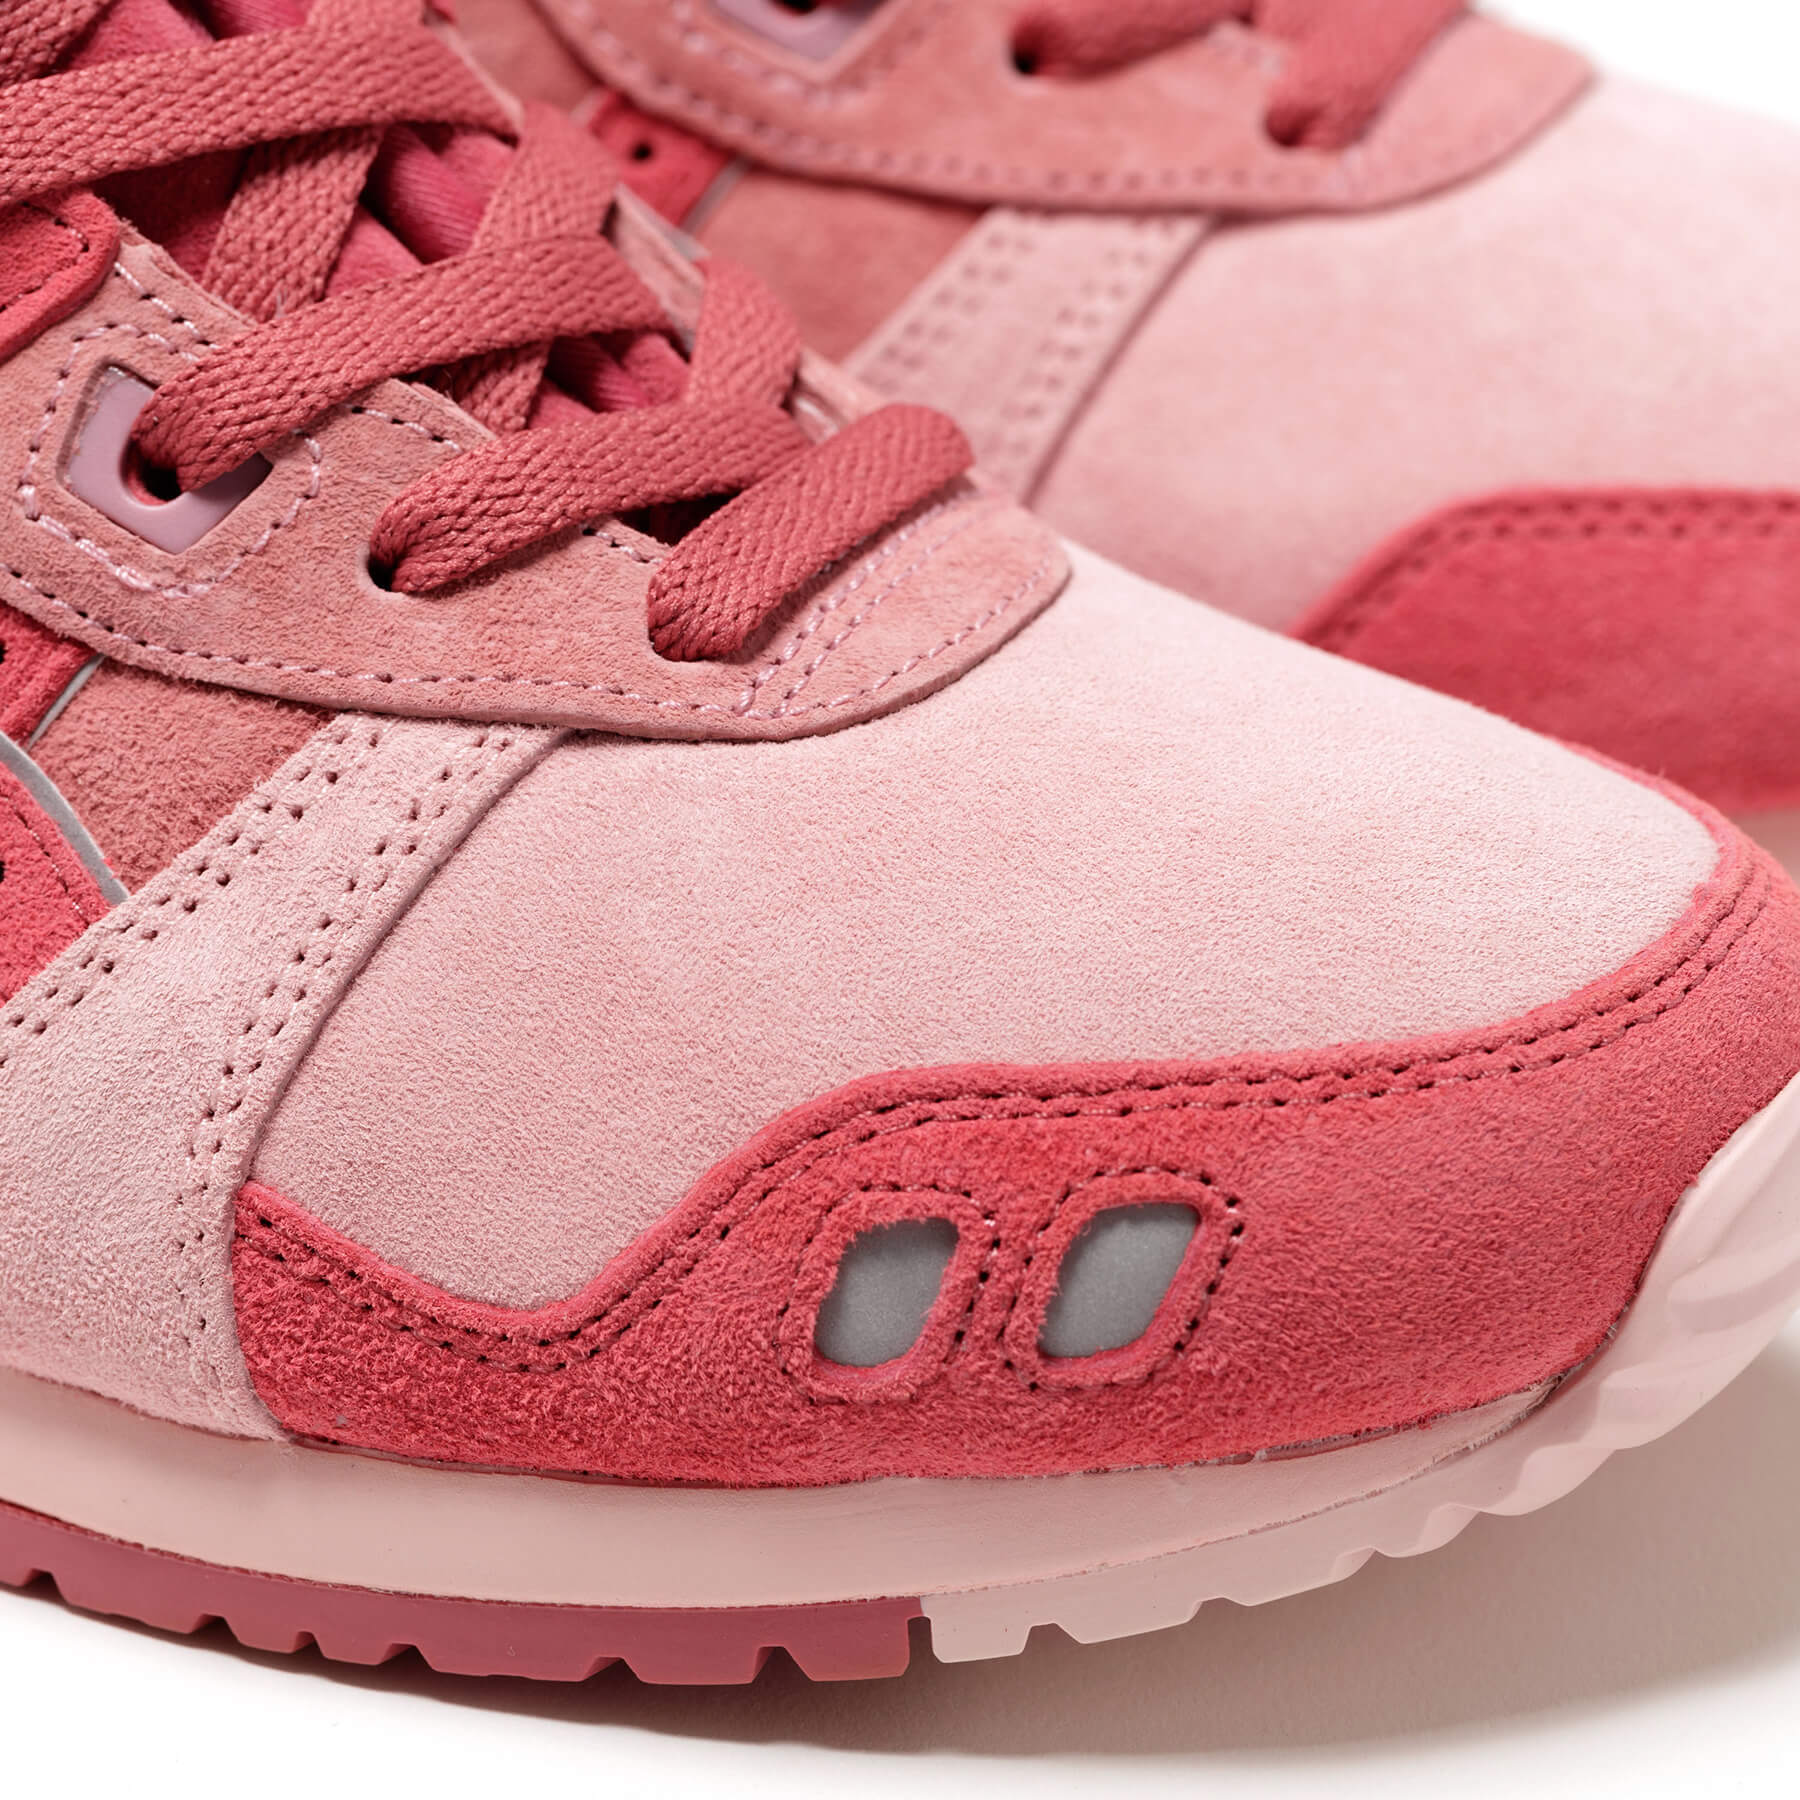 """detail photo of the toebox of the ASICS SportStyle x Concepts - GEL-LYTE III OG - """"Otoro"""" - 1203A121-700 - Coral Cloud /Pure Silver"""